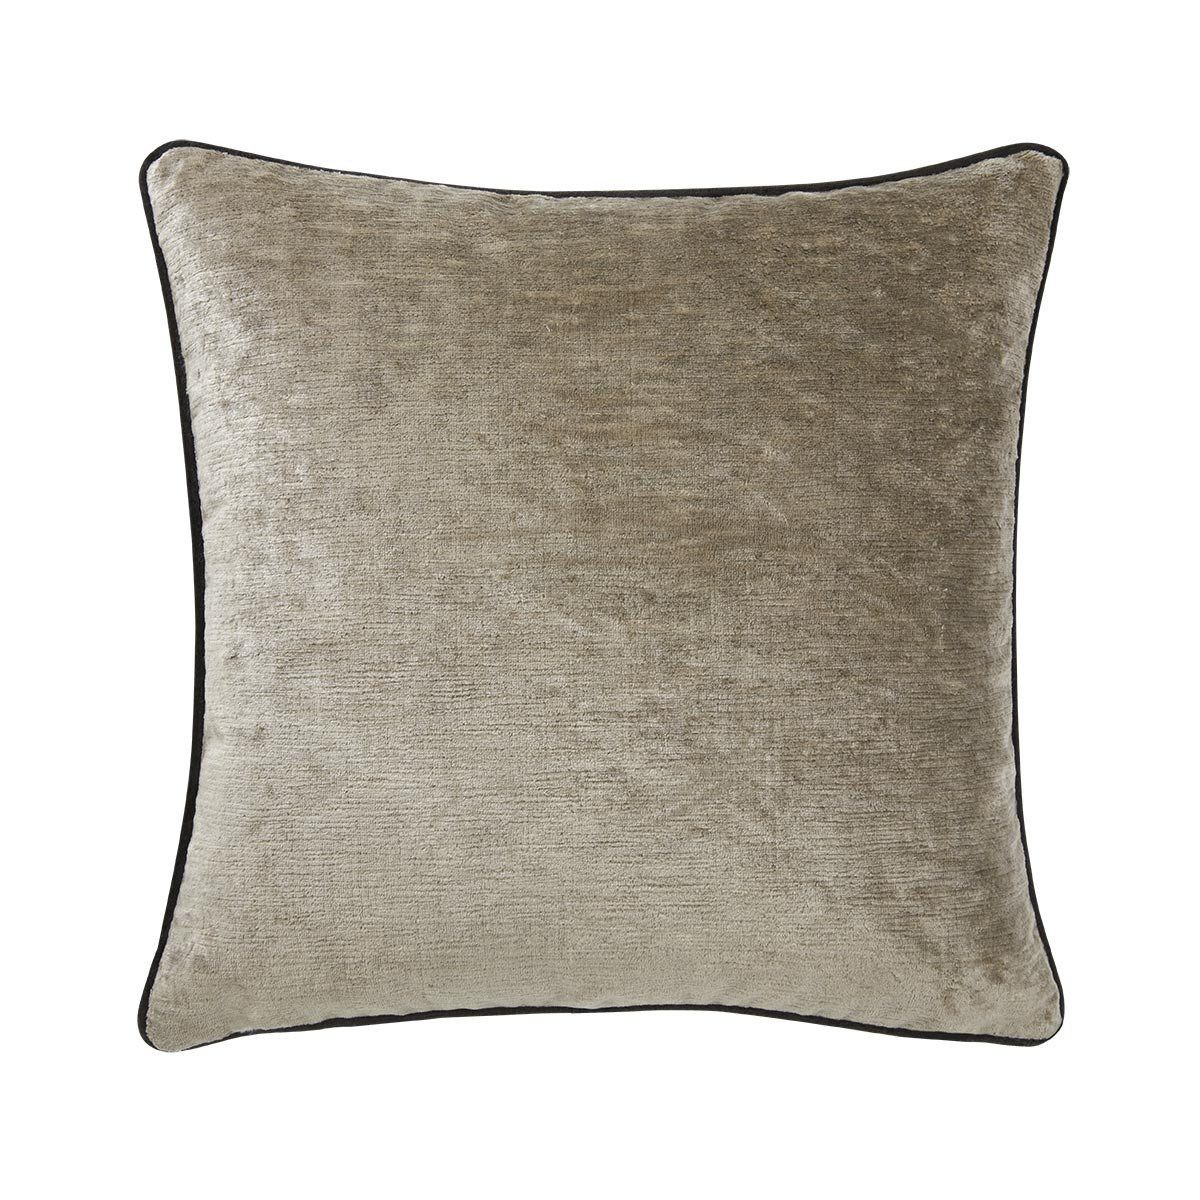 Boromee Argent Decorative Pillow by Iosis